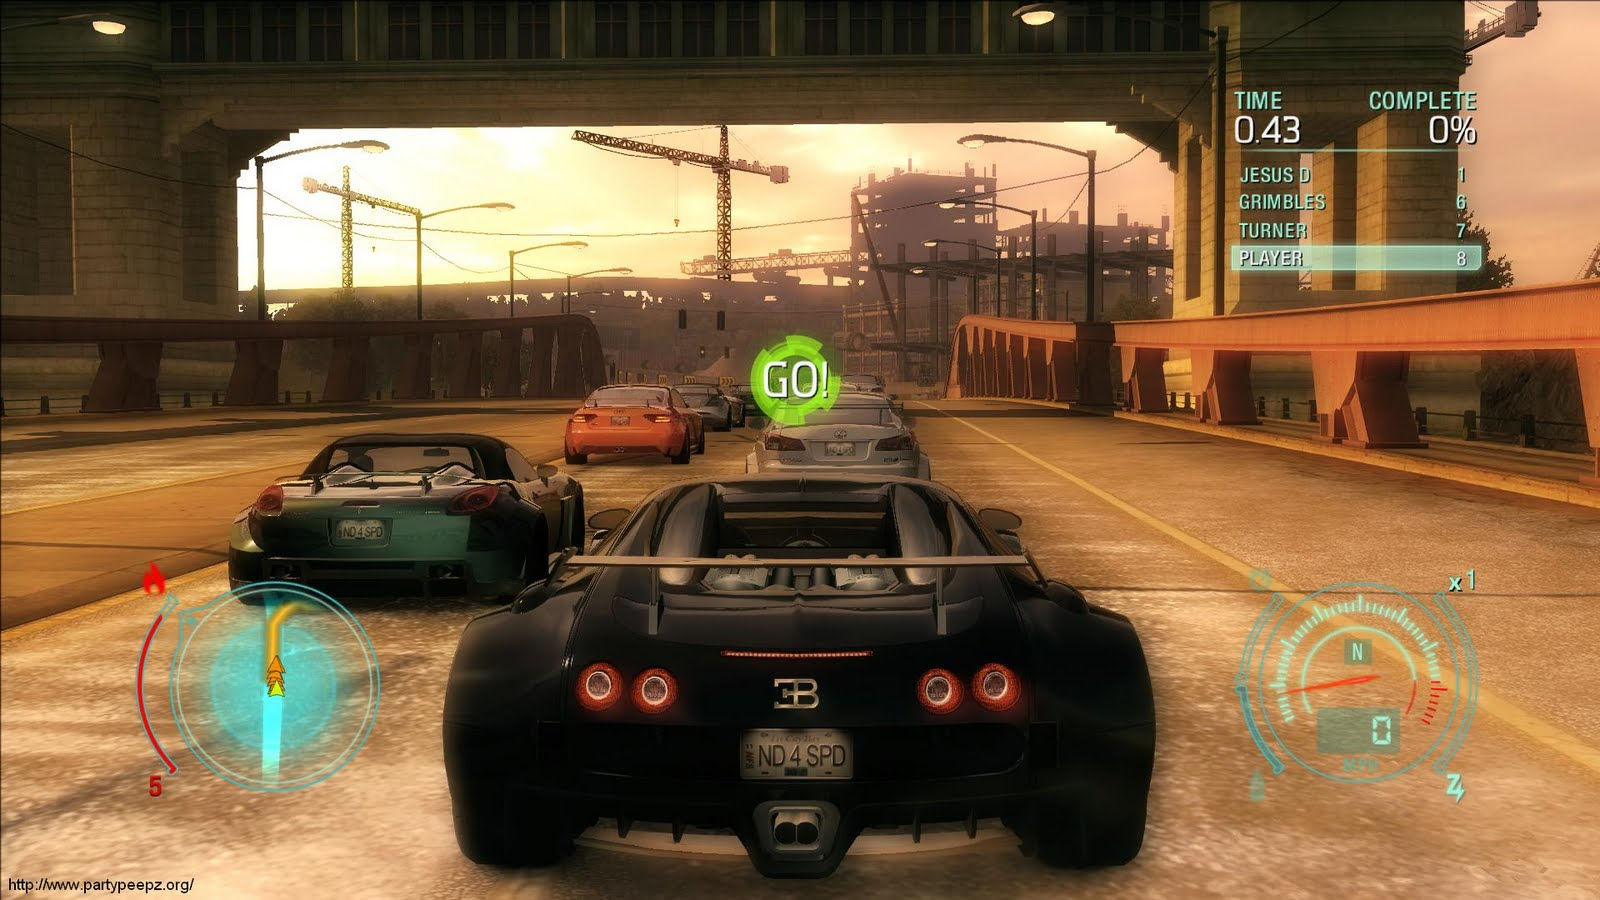 Video Games: Need For Speed Undercover (NFSU)